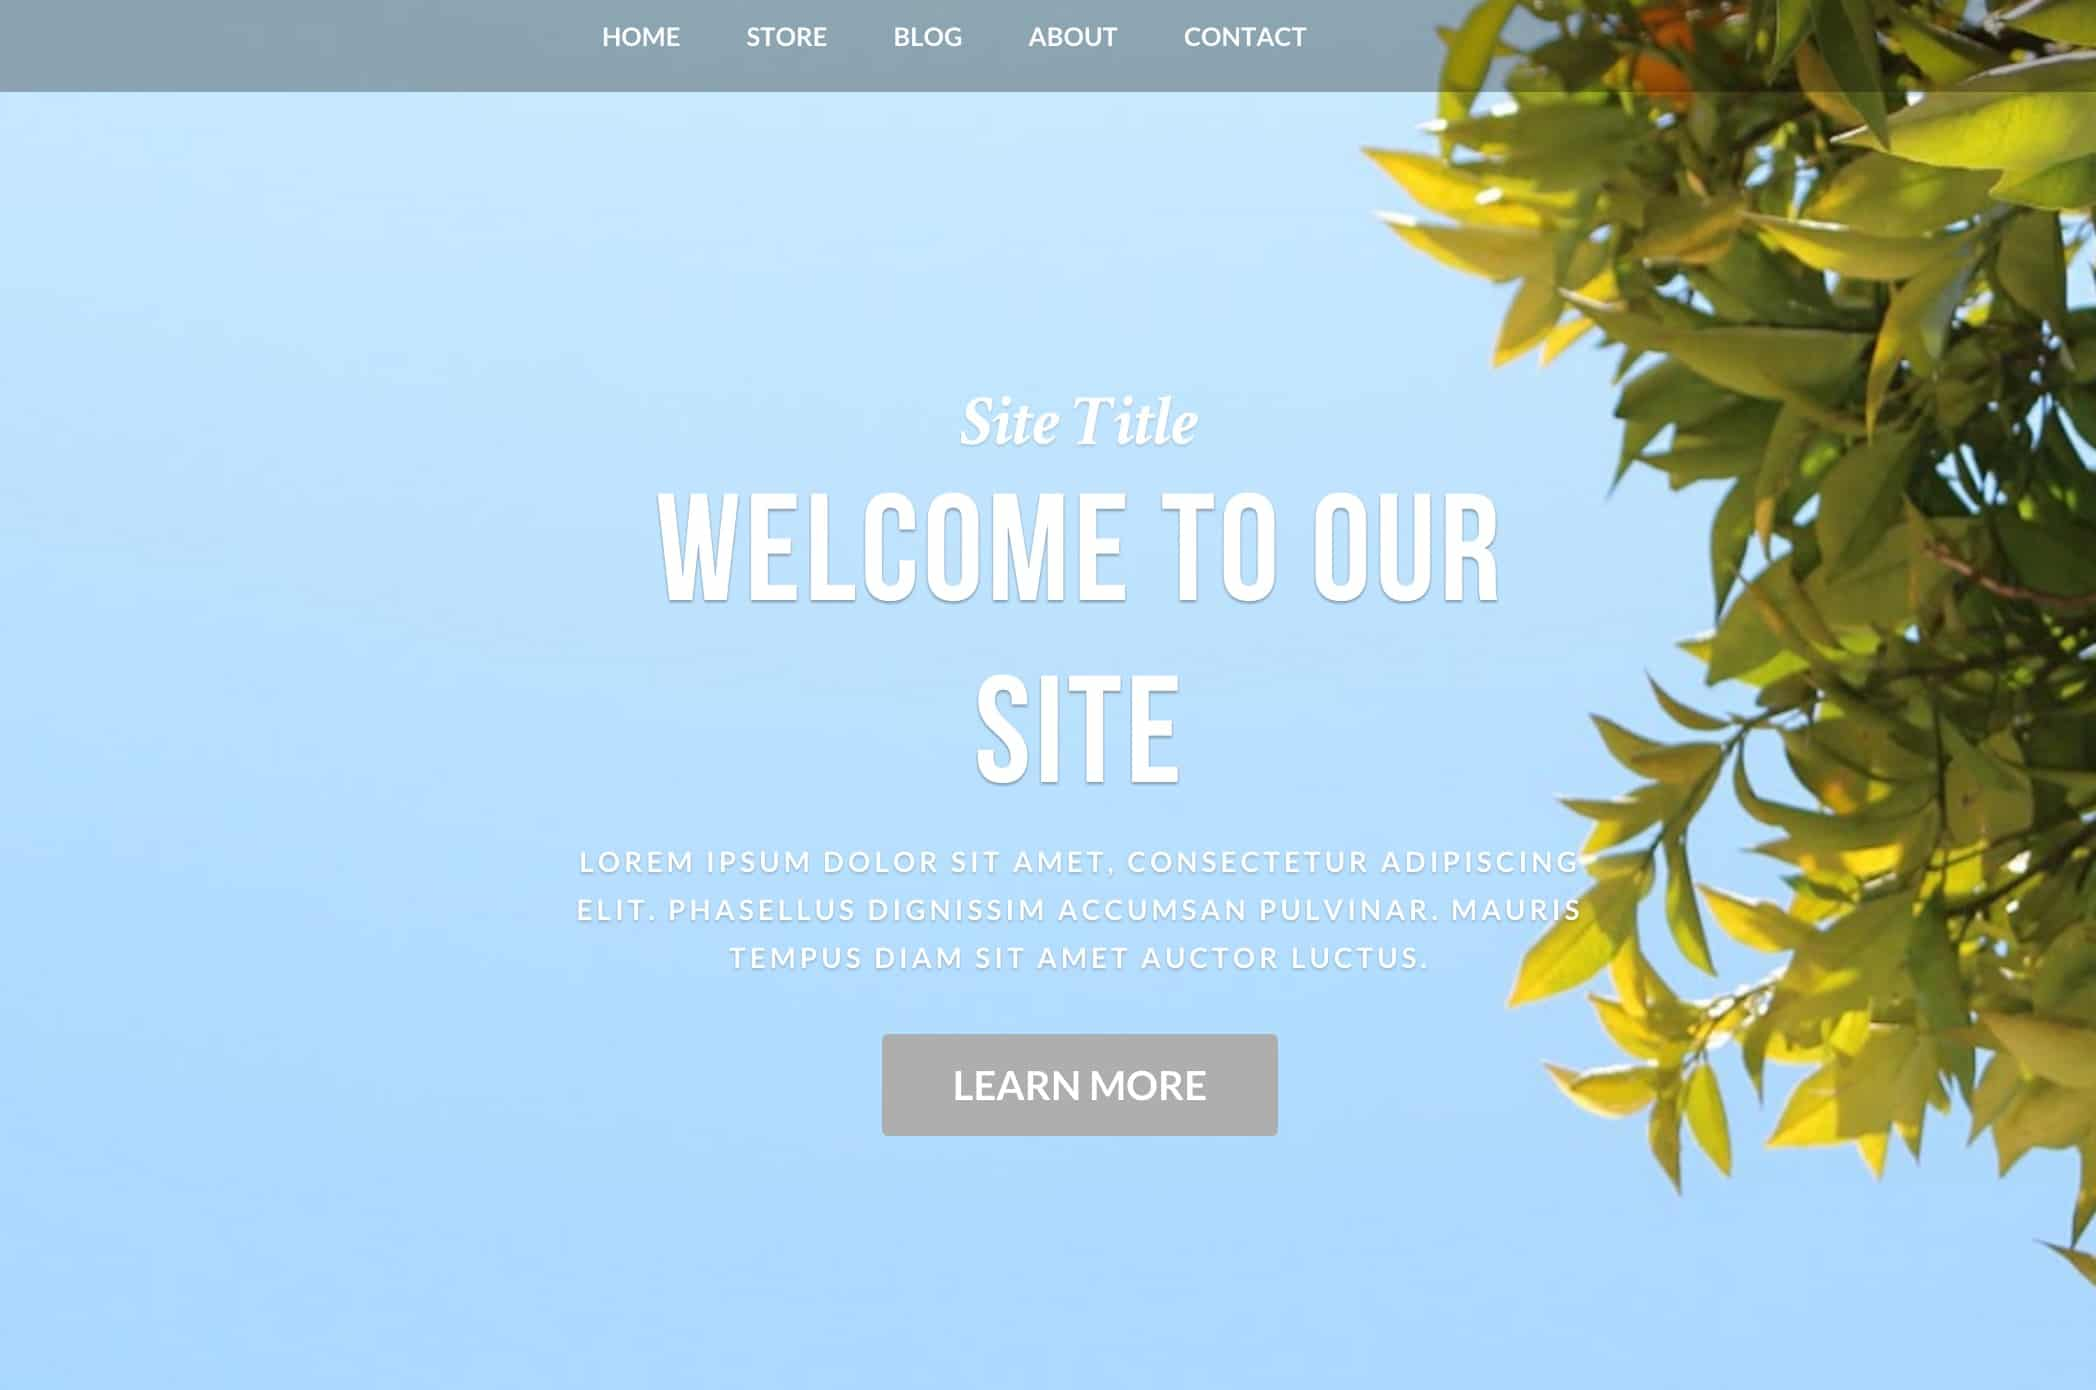 6 weebly themes download website wordpress blog for Free weebly themes and templates